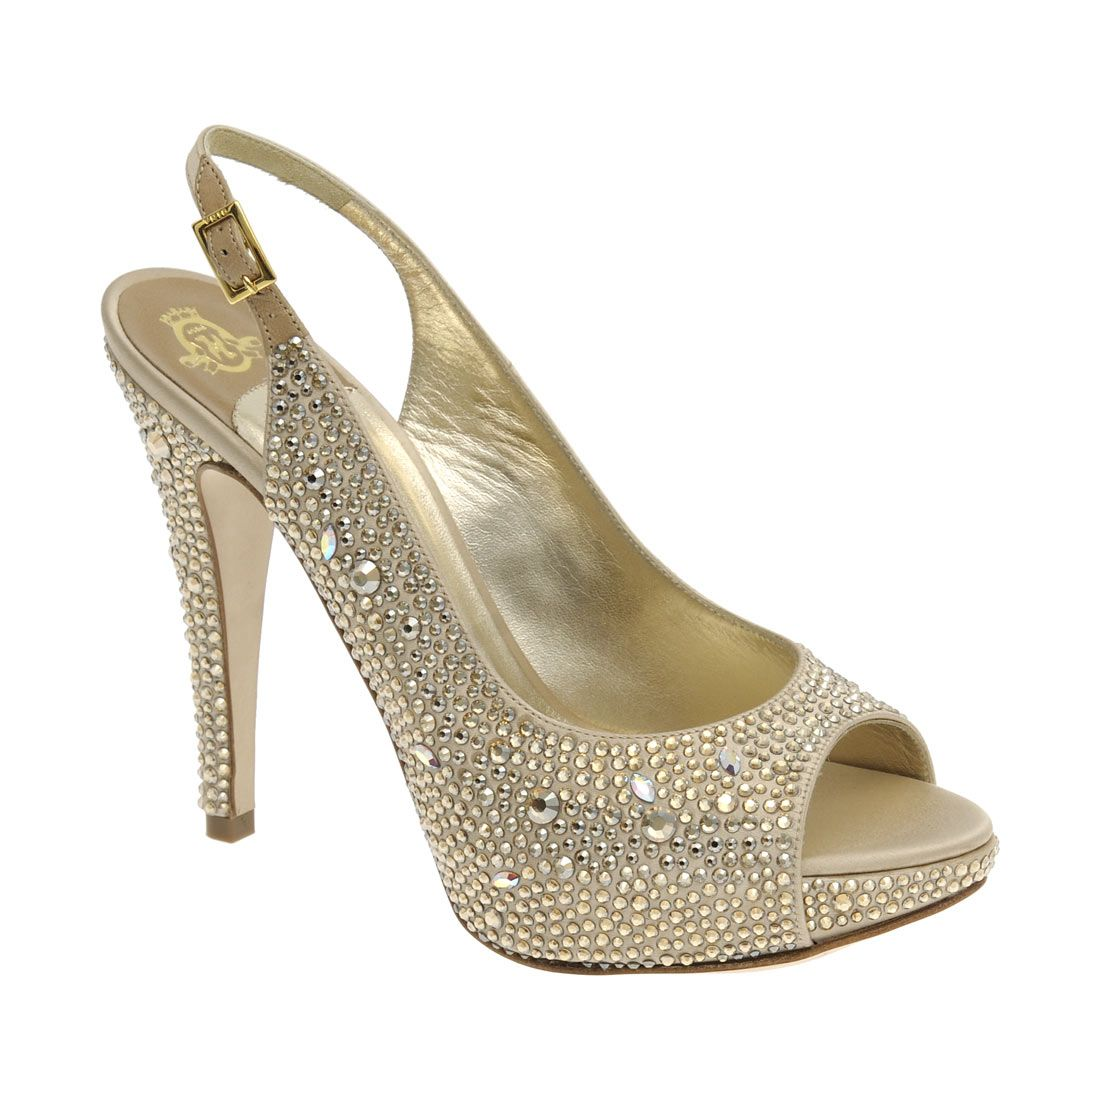 c6e9dd4c3e6 A beautiful camel satin slingback fully encrusted with Swarovski  Golden   diamante complimented with 115mm stiletto heel and platform.